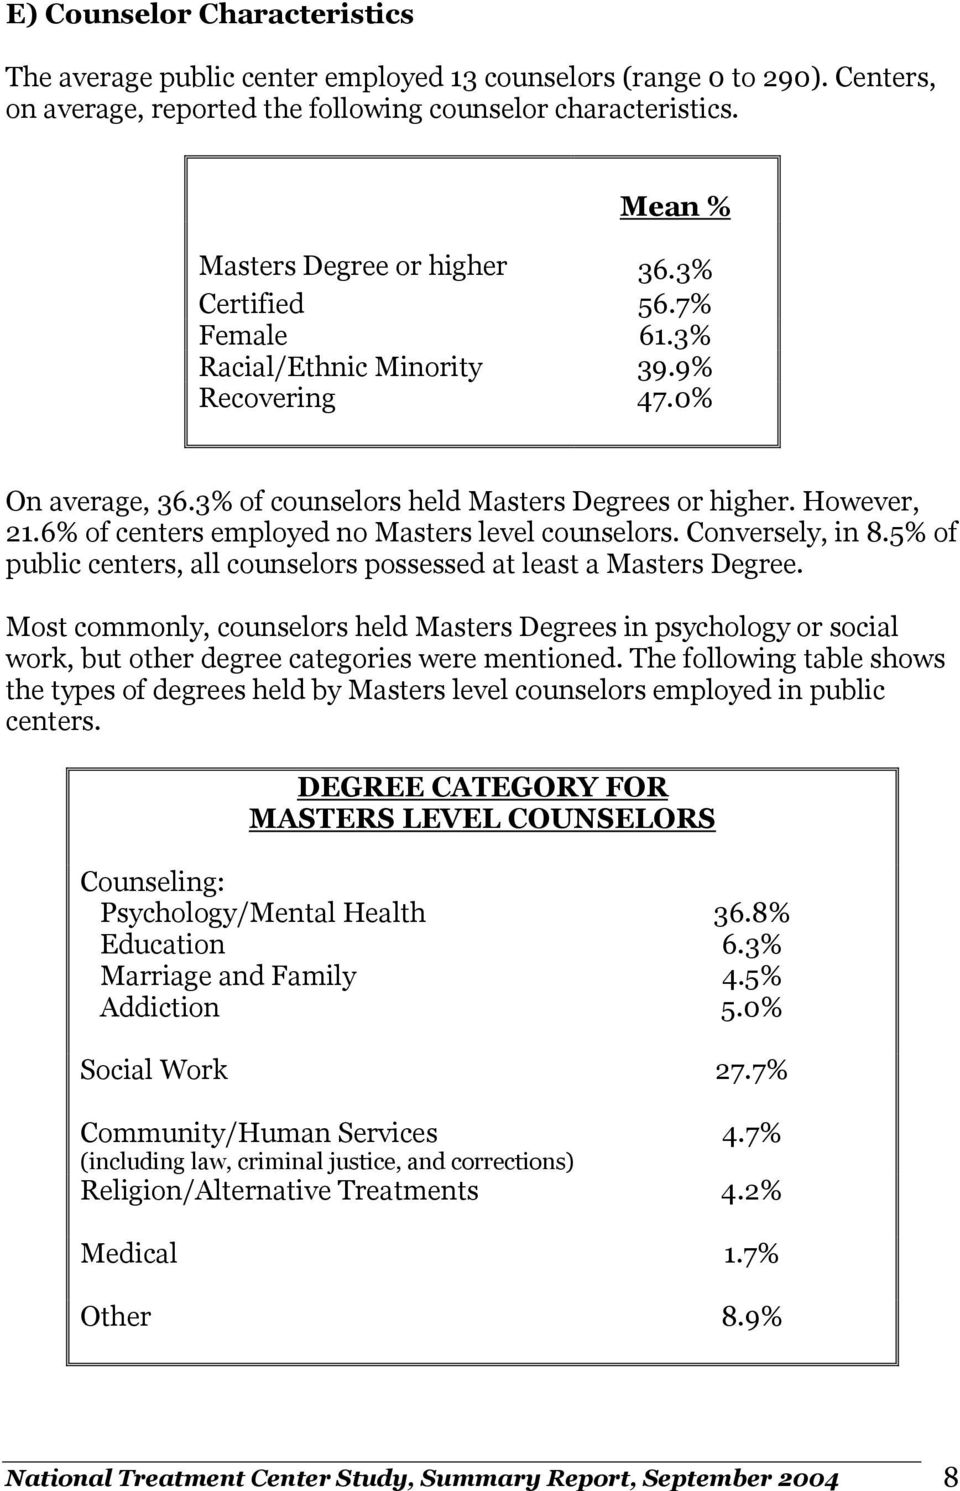 6% of centers employed no Masters level counselors. Conversely, in 8.5% of public centers, all counselors possessed at least a Masters Degree.